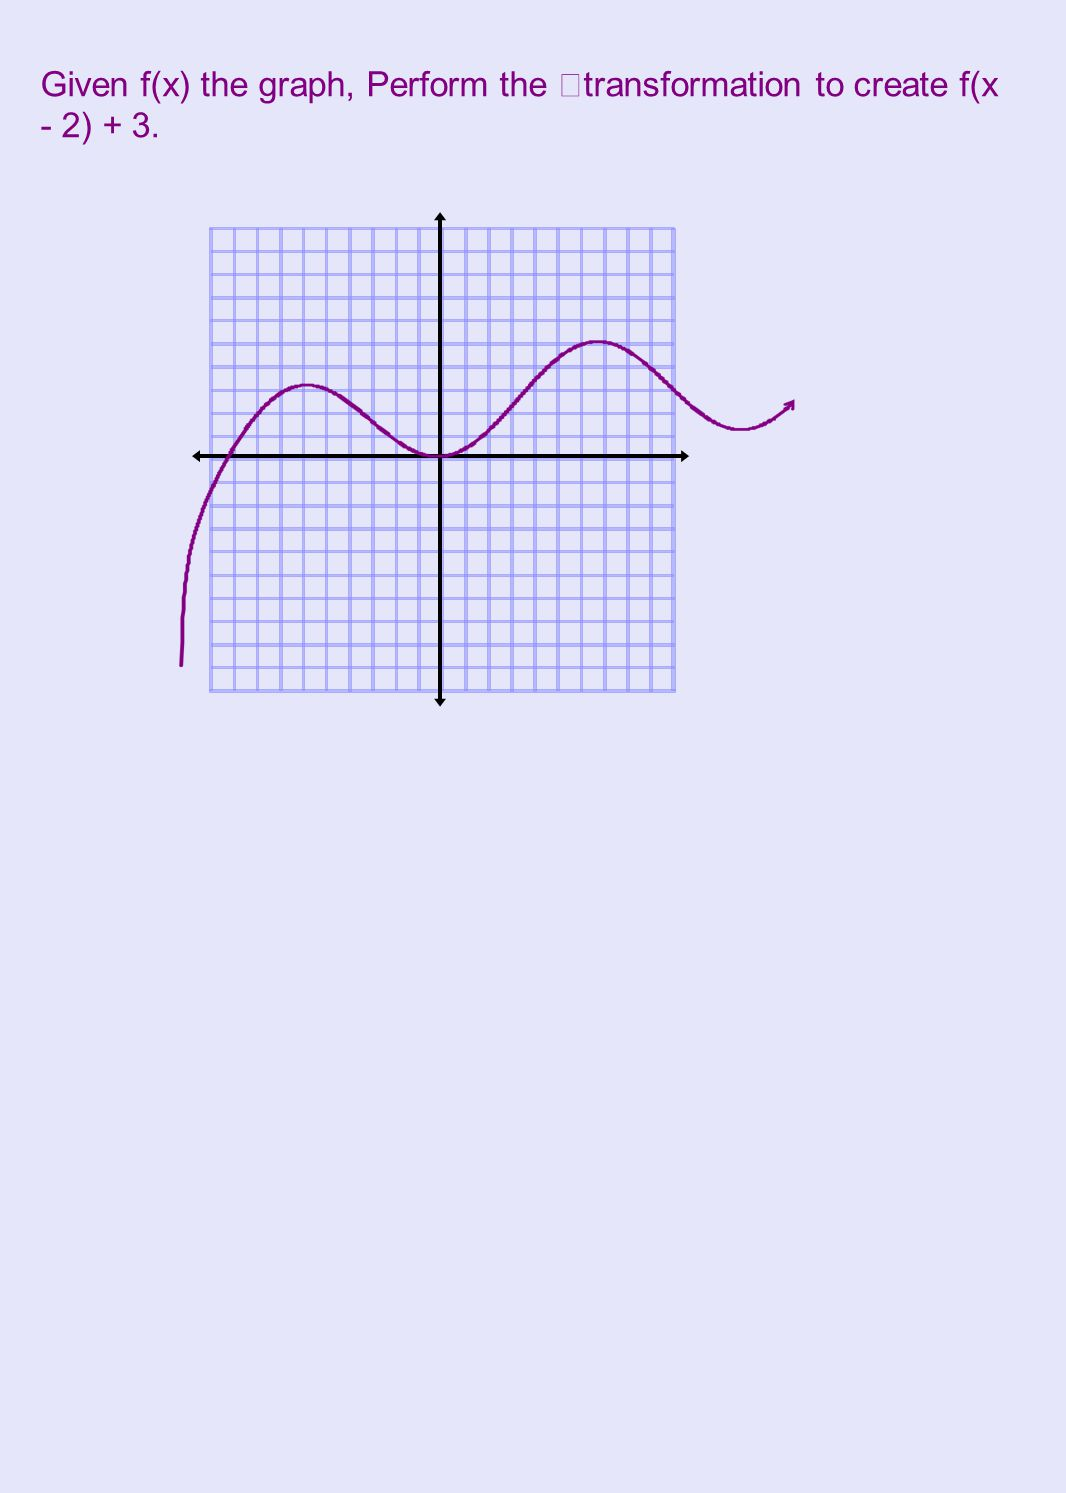 Given f(x) the graph, Perform the transformation to create f(x - 2) + 3.